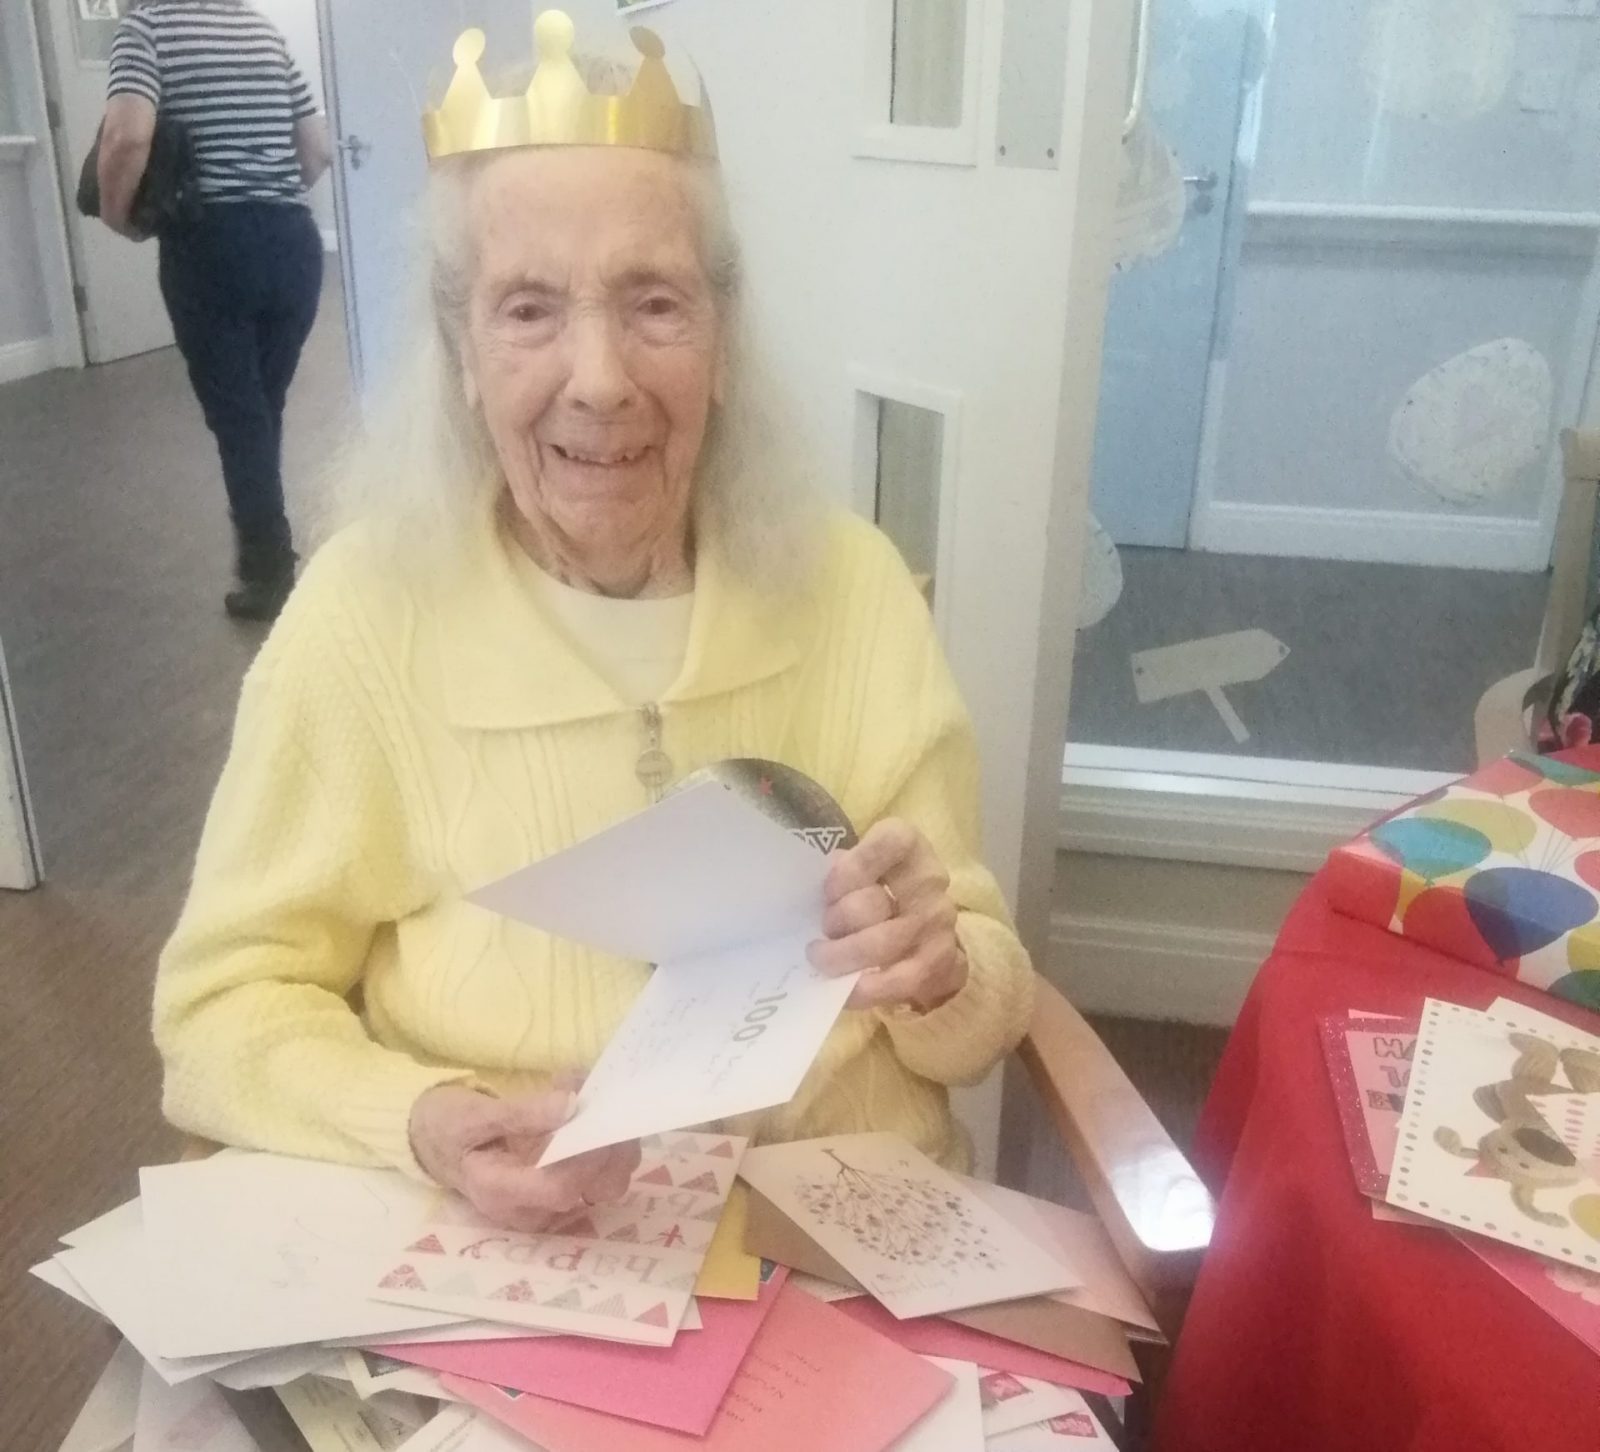 Local community sends hundreds of cards and gifts to celebrate care home resident's 100th birthday, The Manc